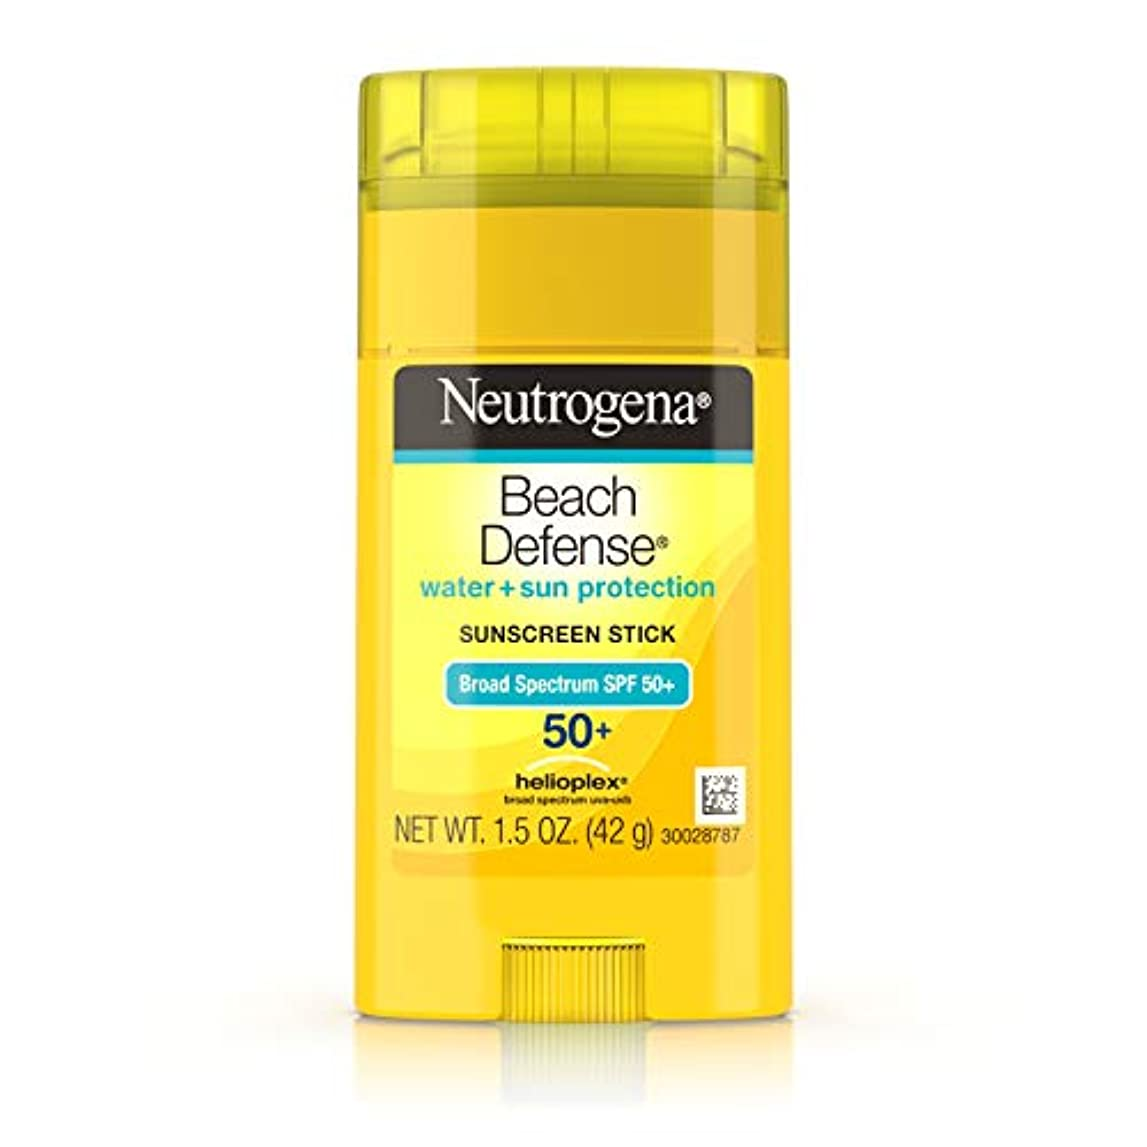 またね暖かさ狂乱Neutrogena Sunscreen Beach Defense Sunblock Stick SPF 50, 1.5 Ounce